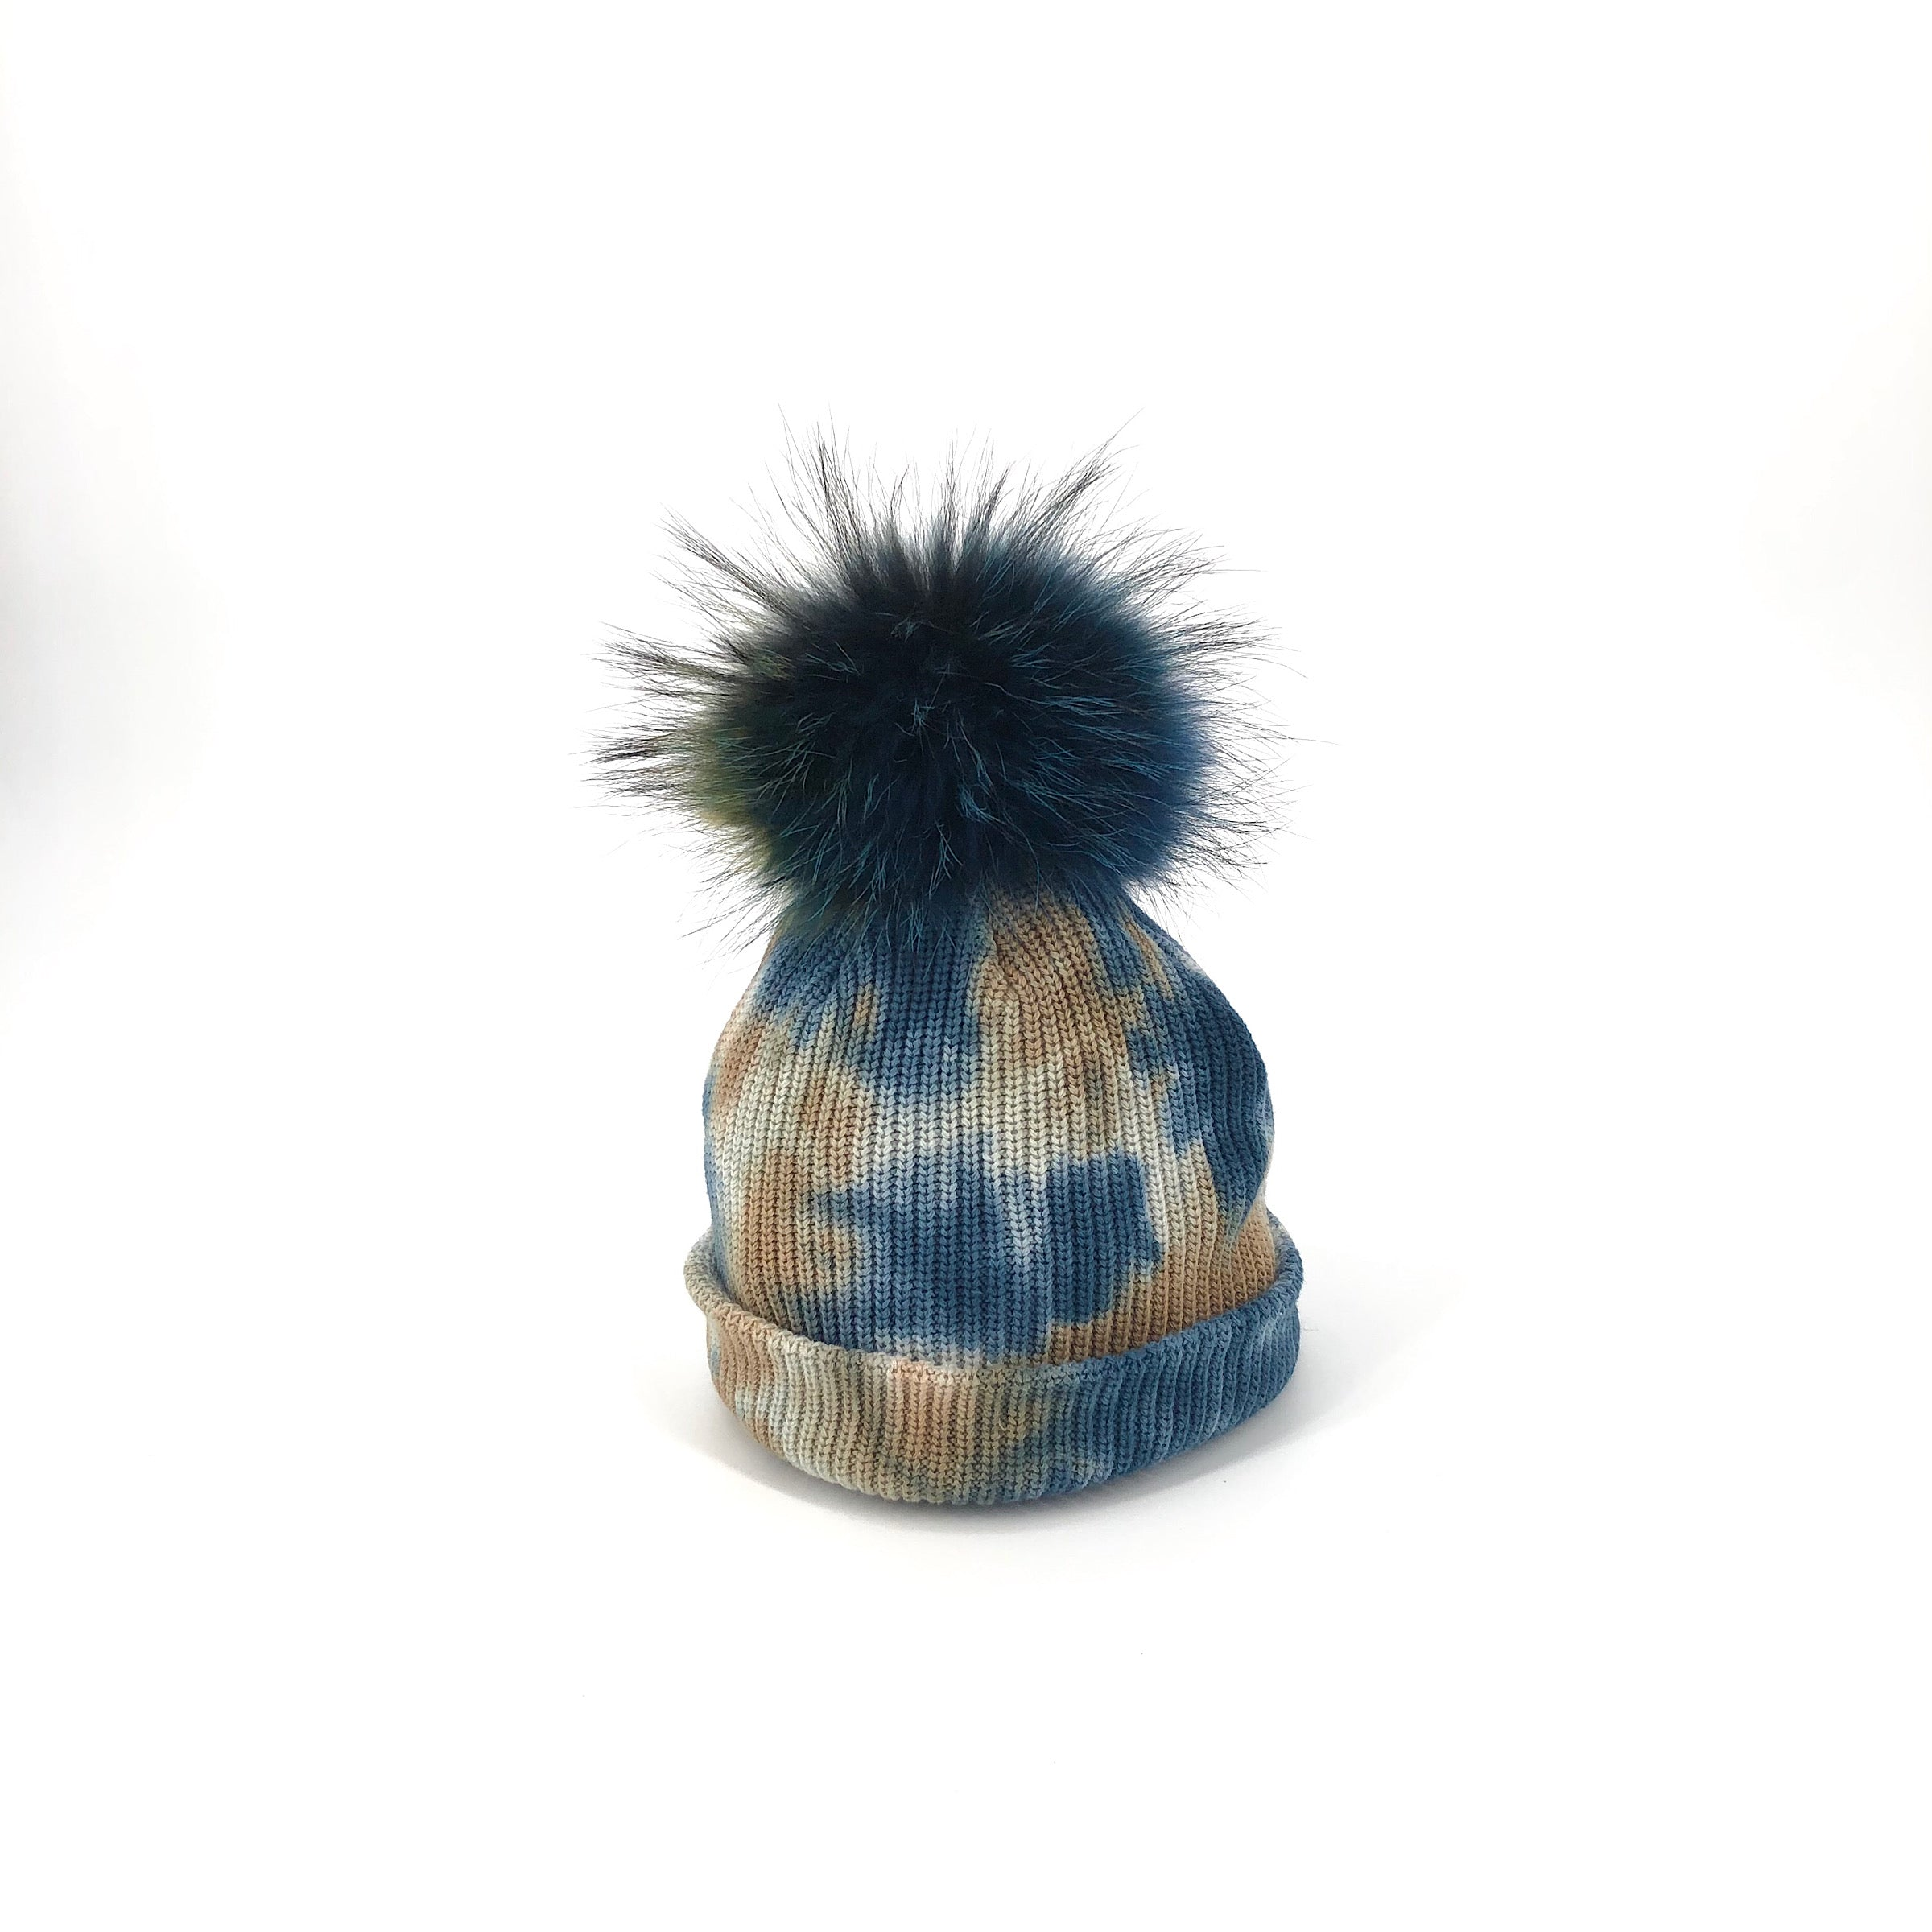 The Tie Dye Fur Pom Hat in Blue